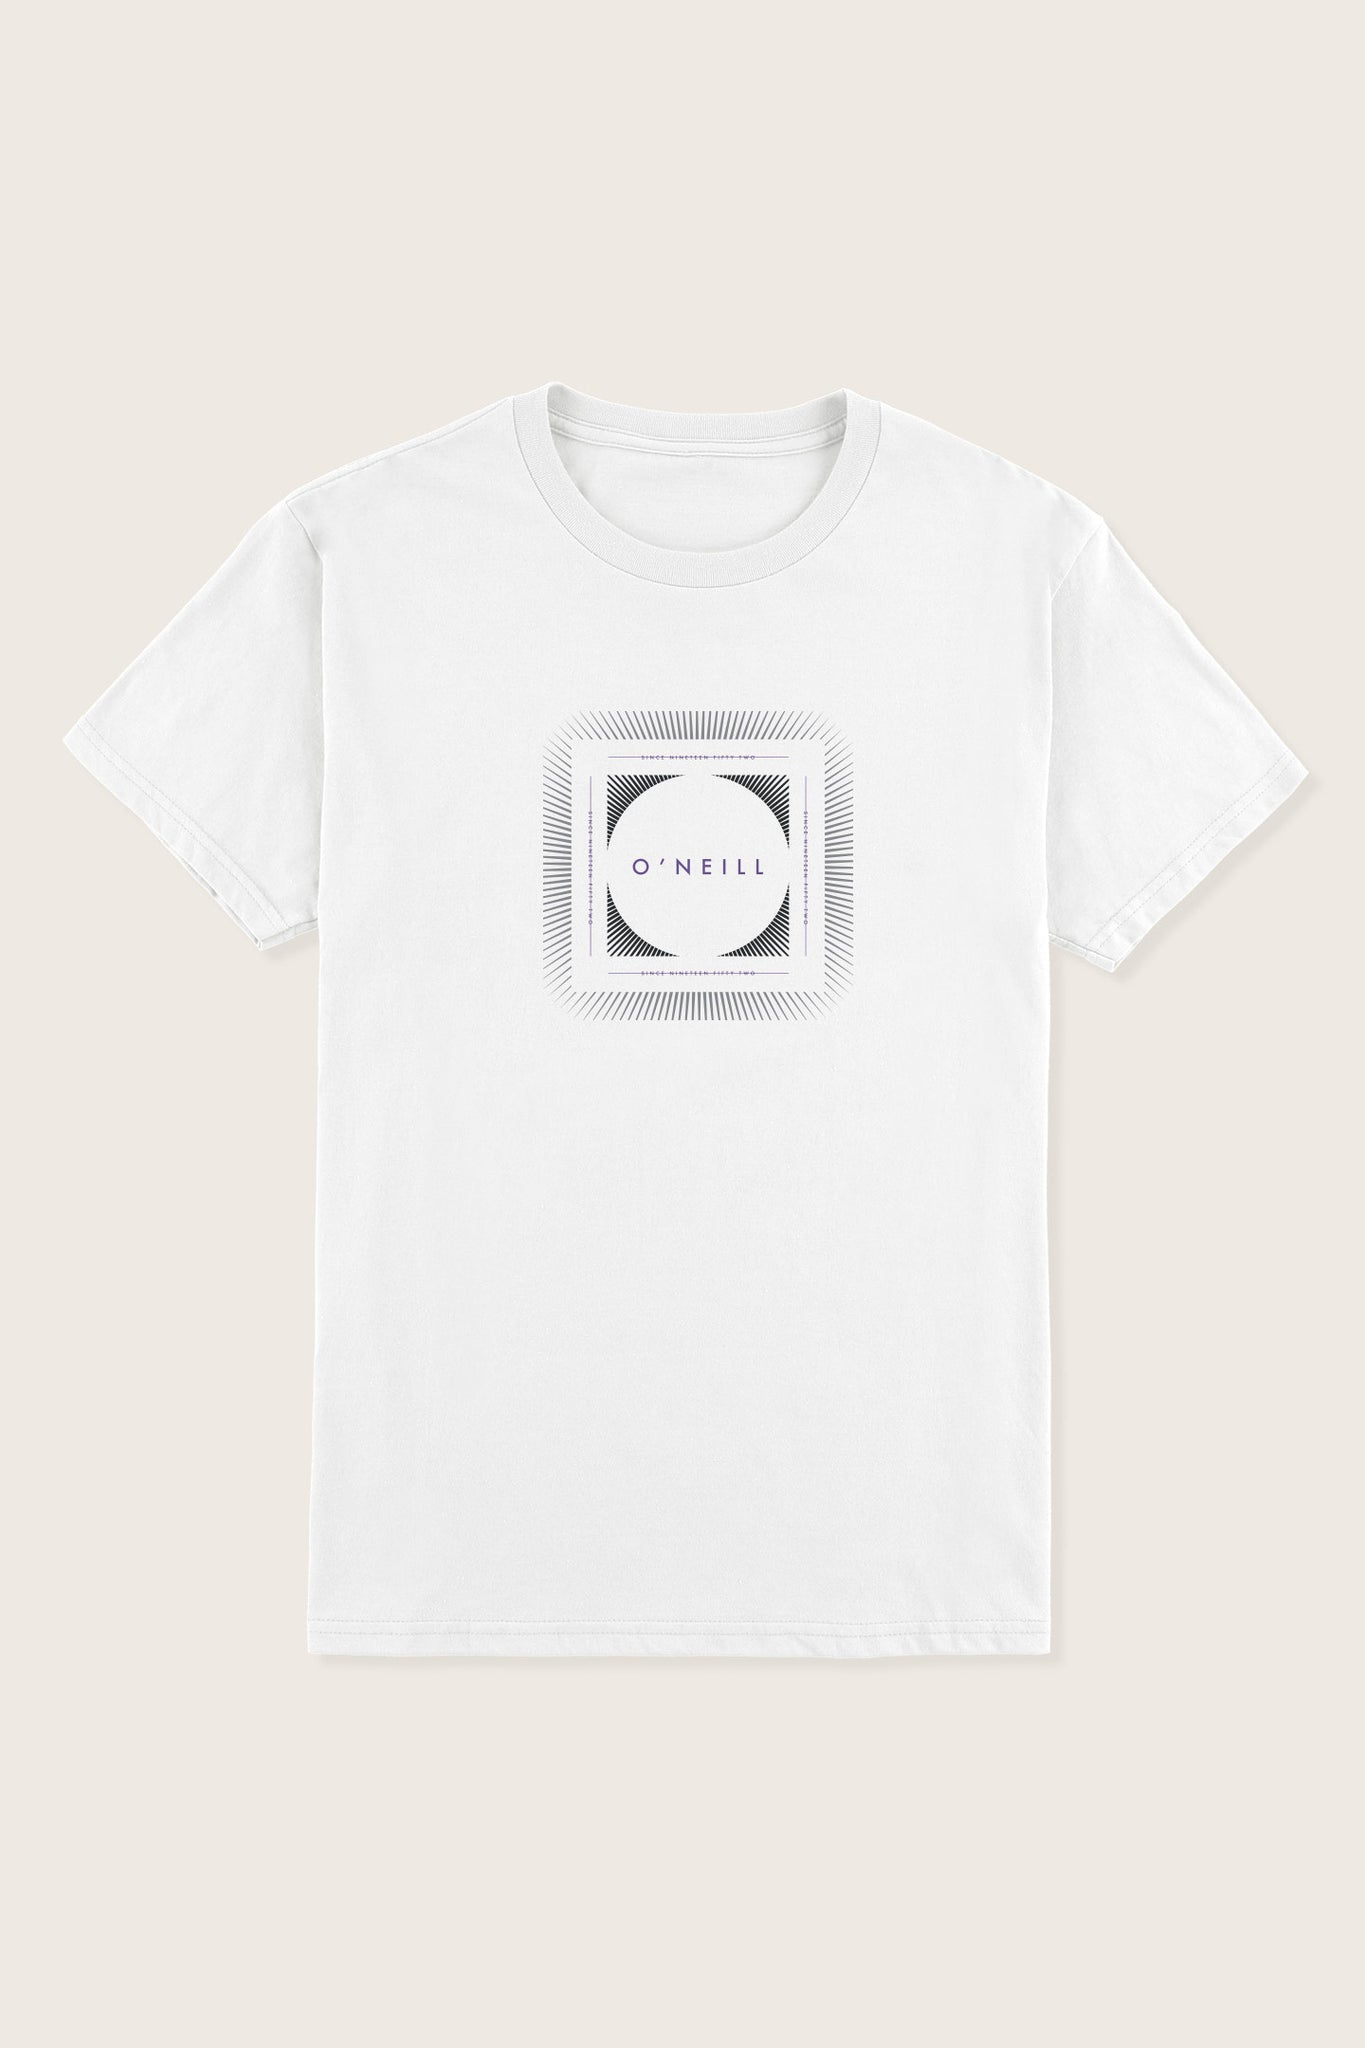 Voided Tee | O'Neill Clothing USA